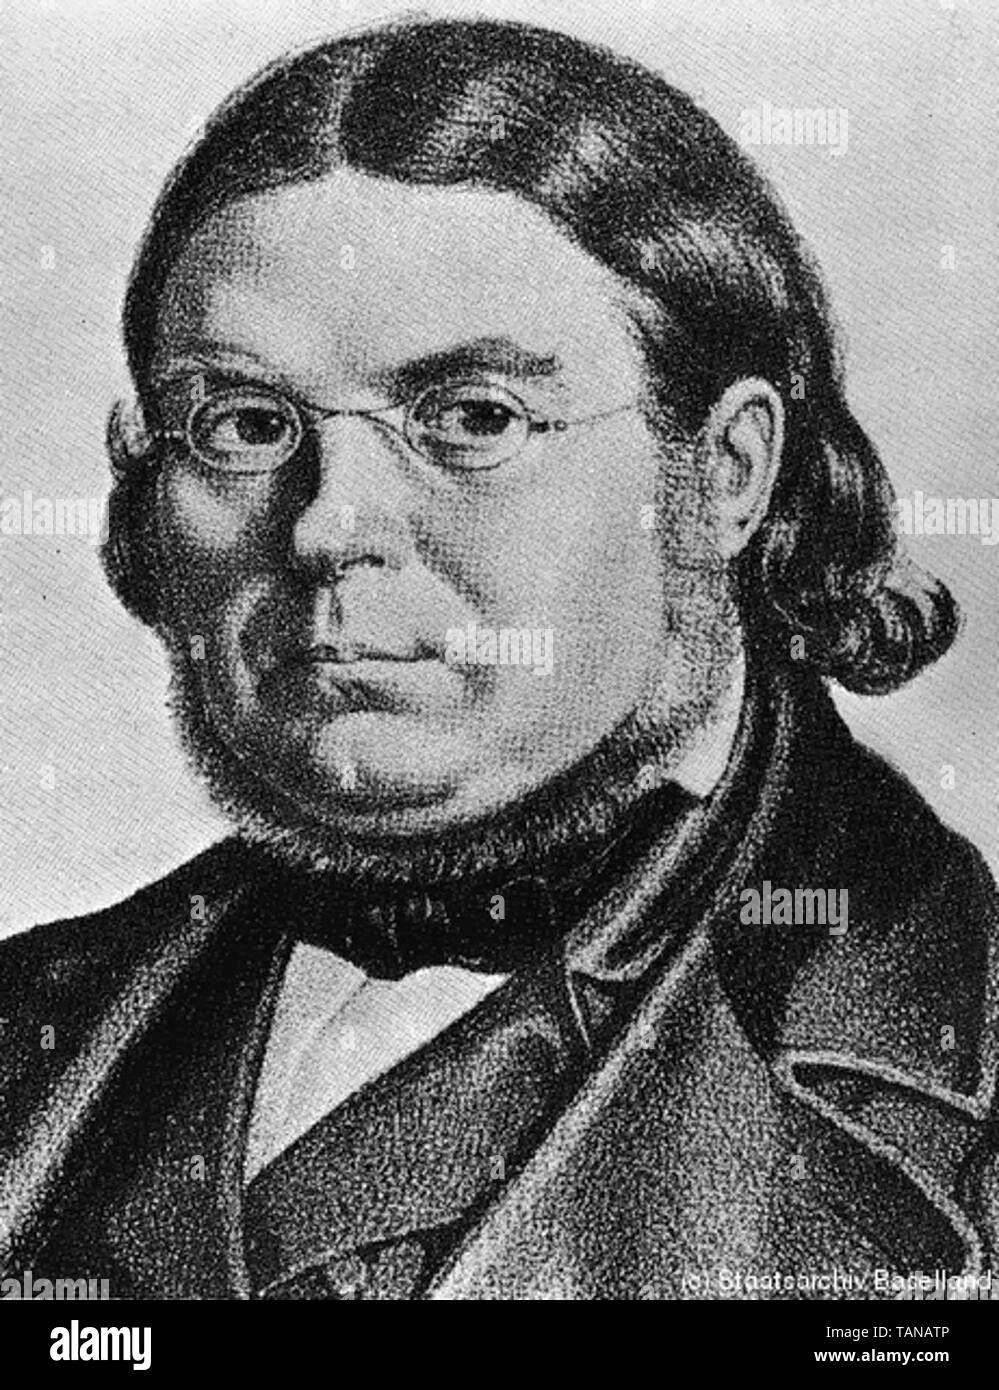 Georg Fein (1803–1869) was a German democratic journalist, an early German socialist and a liberal nationalist. He was a prominent publicist during the Vormärz period that preceded the Revolution of 1848. - Stock Image